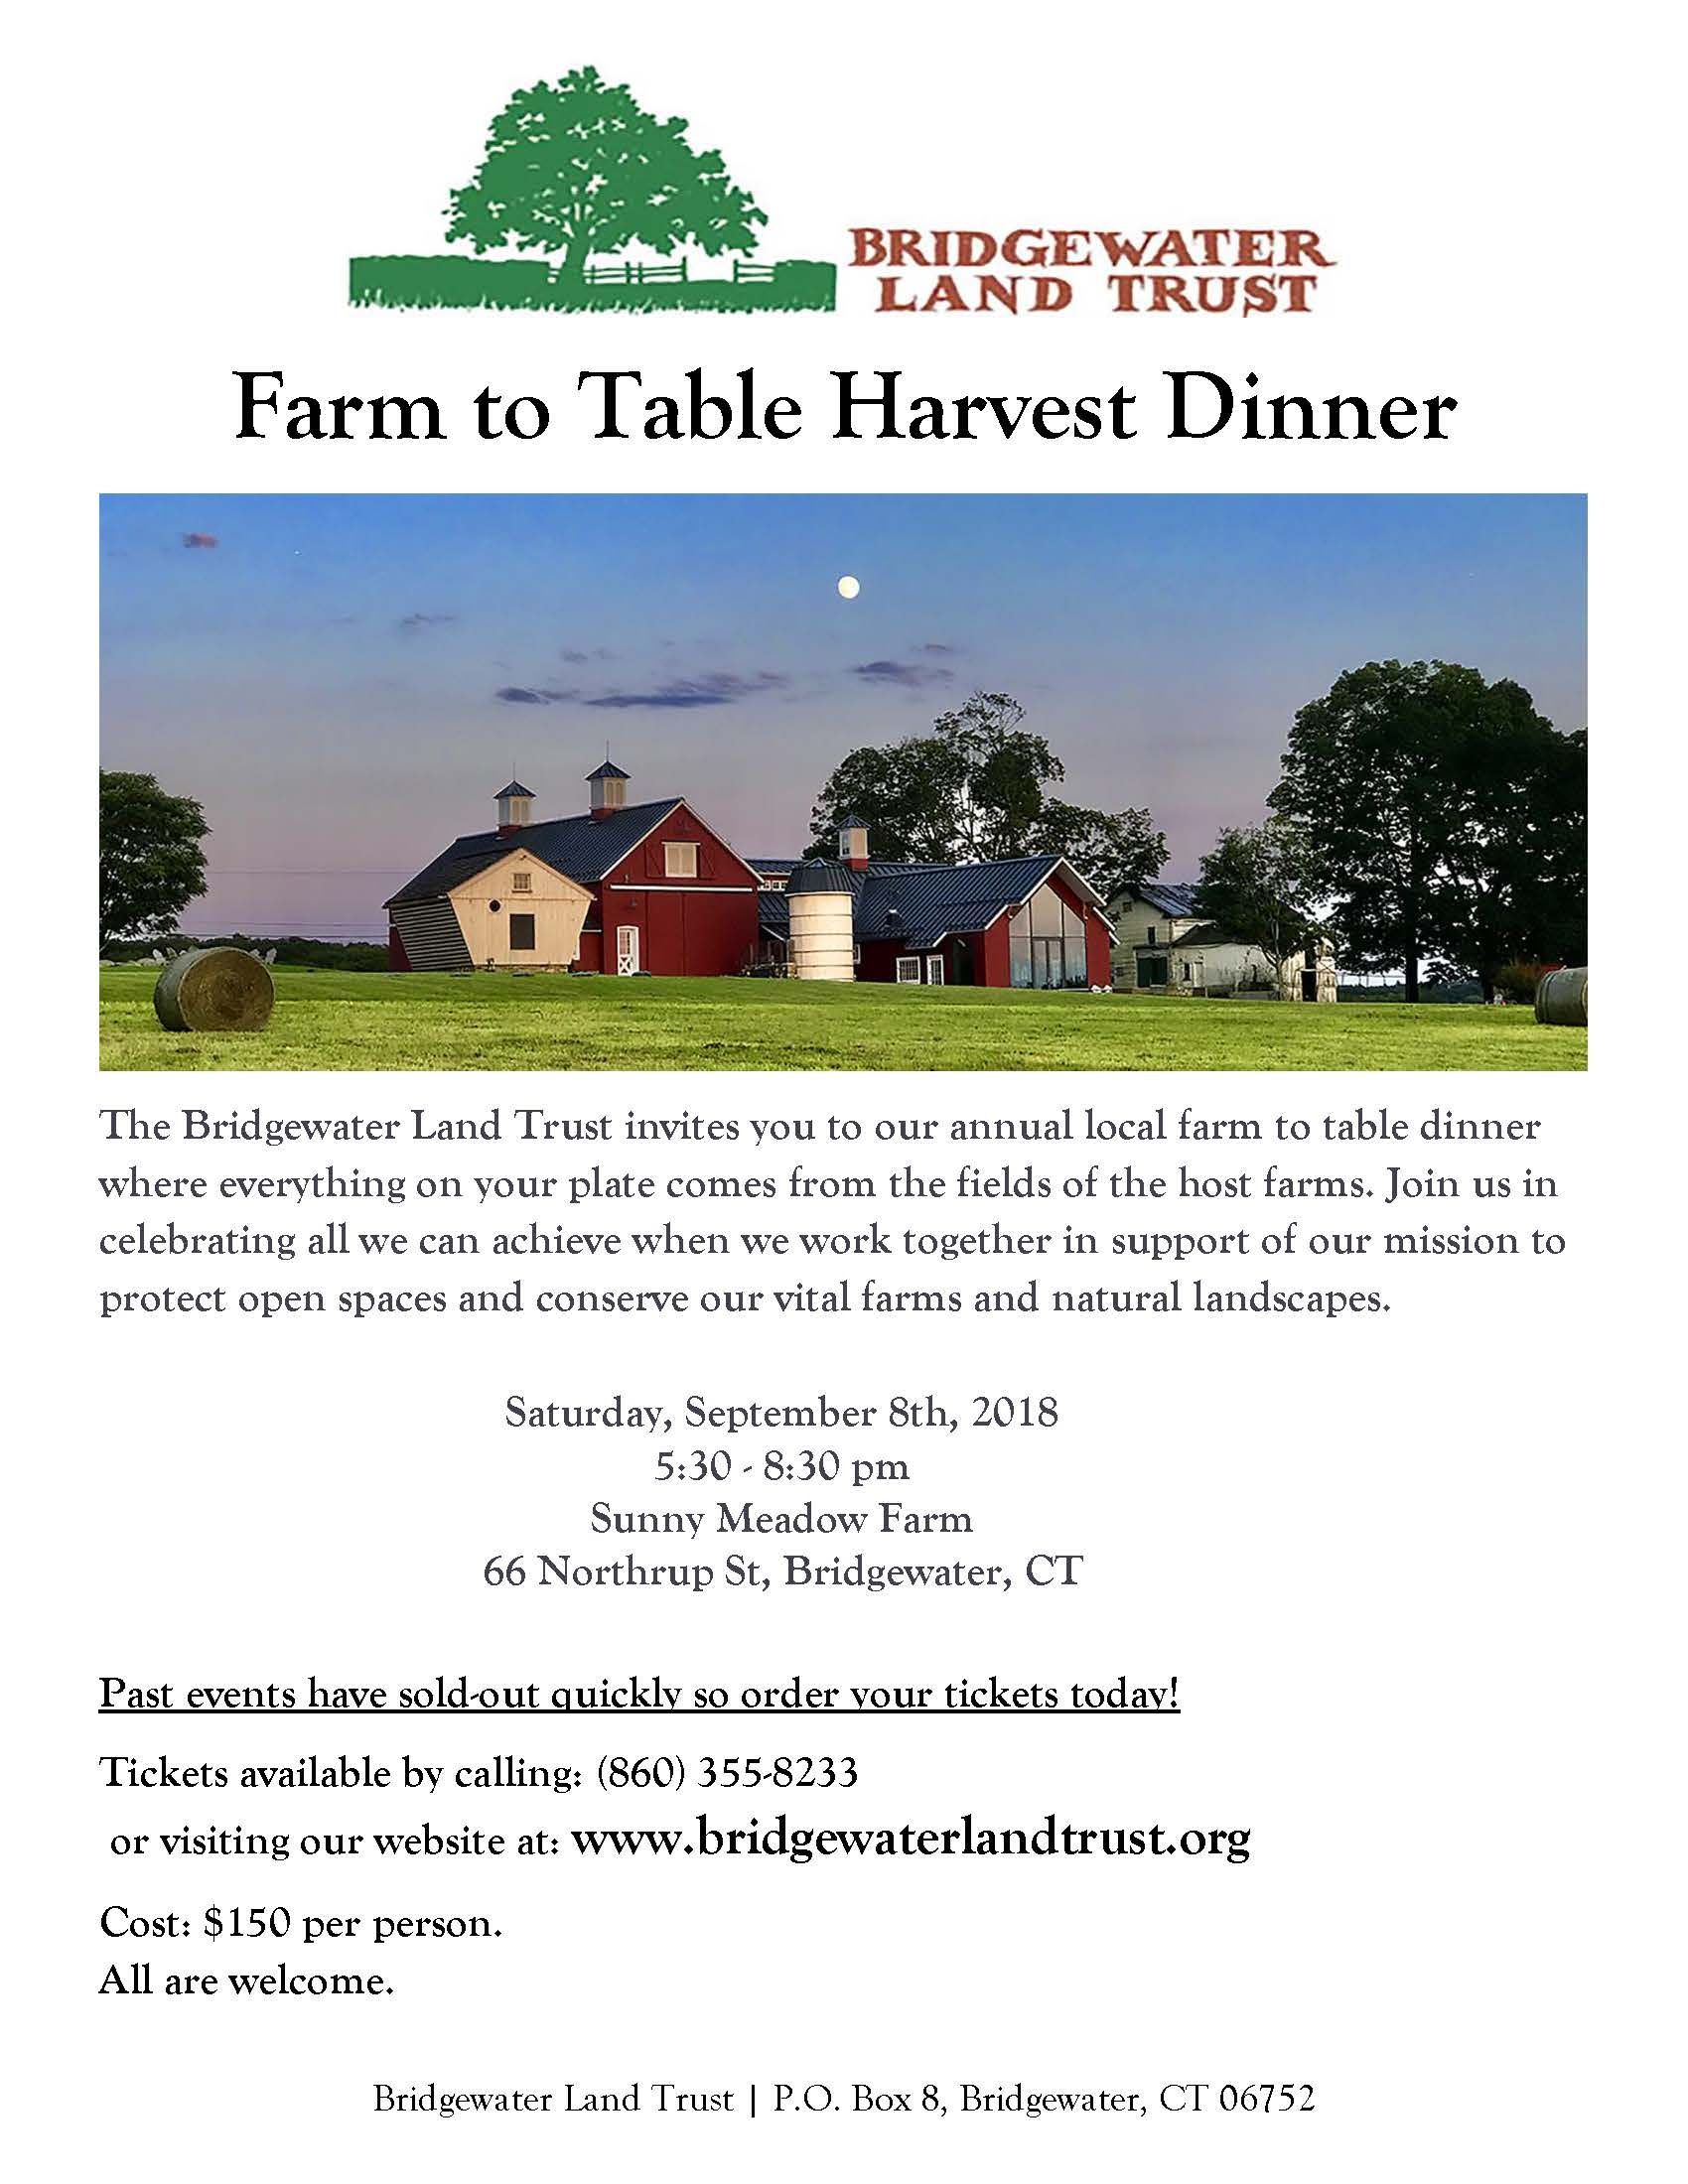 Farm to Table Harvest Dinner Flyer.jpg